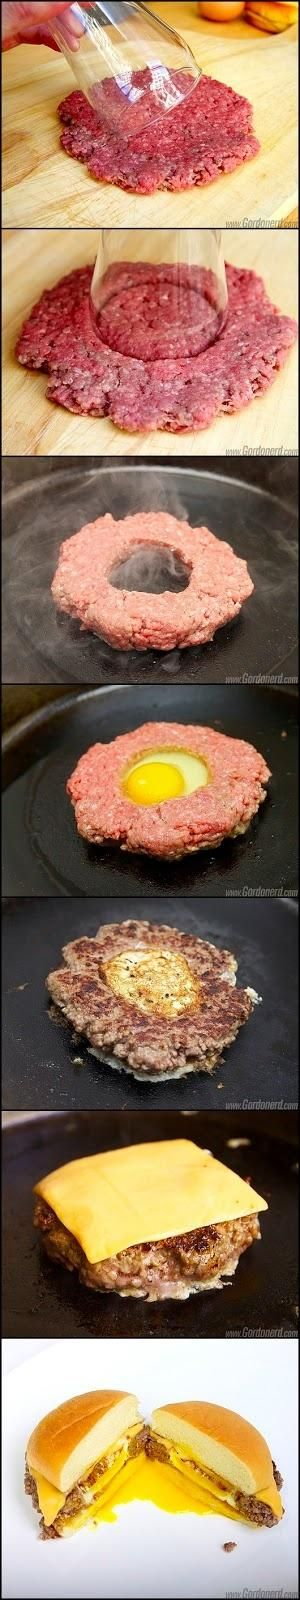 Perfect Burgers - eggs make everything better